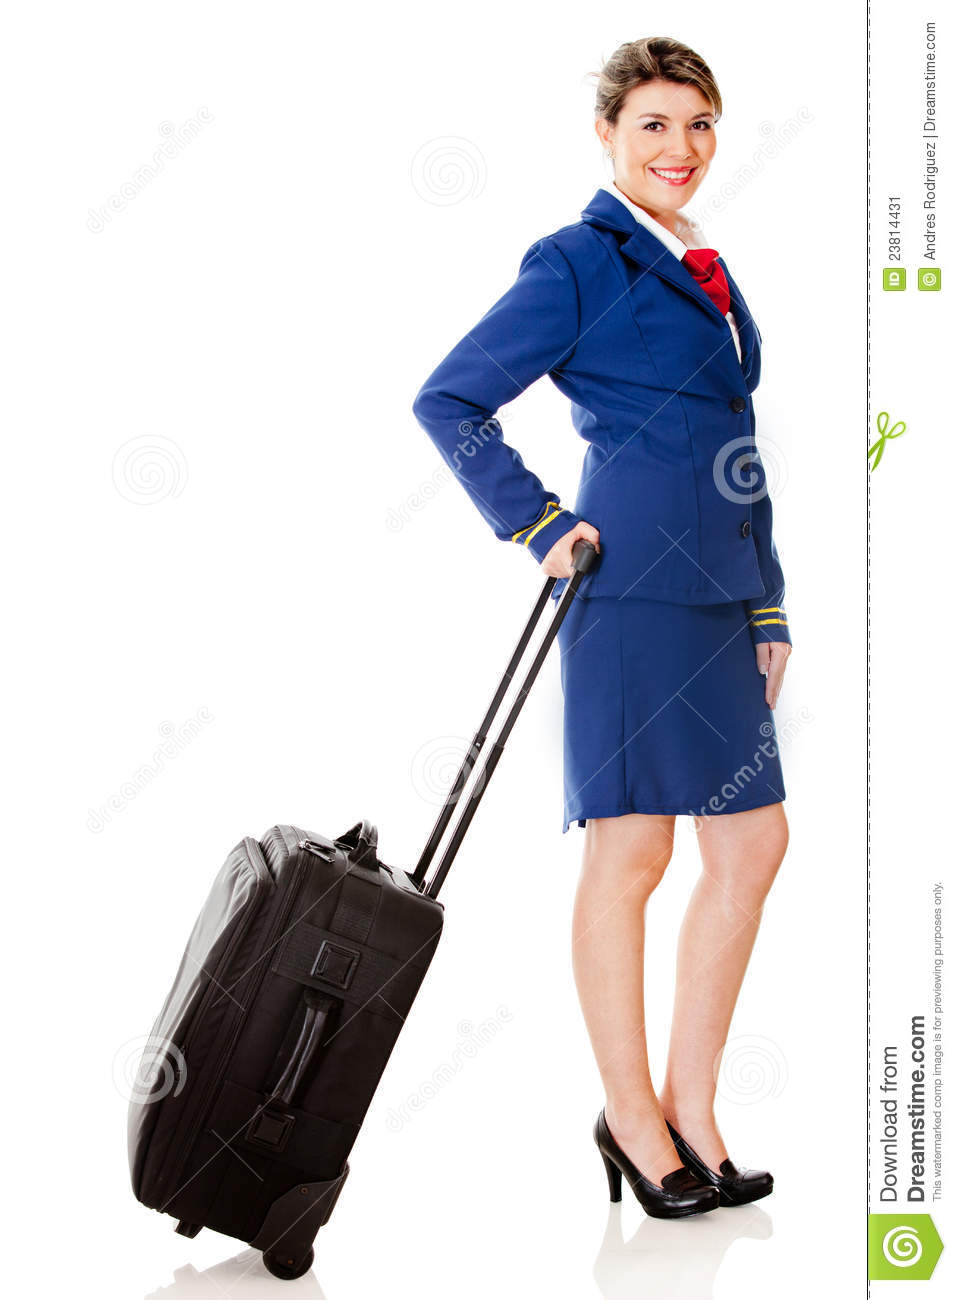 Air hostess with a bag - isolated over a white background.